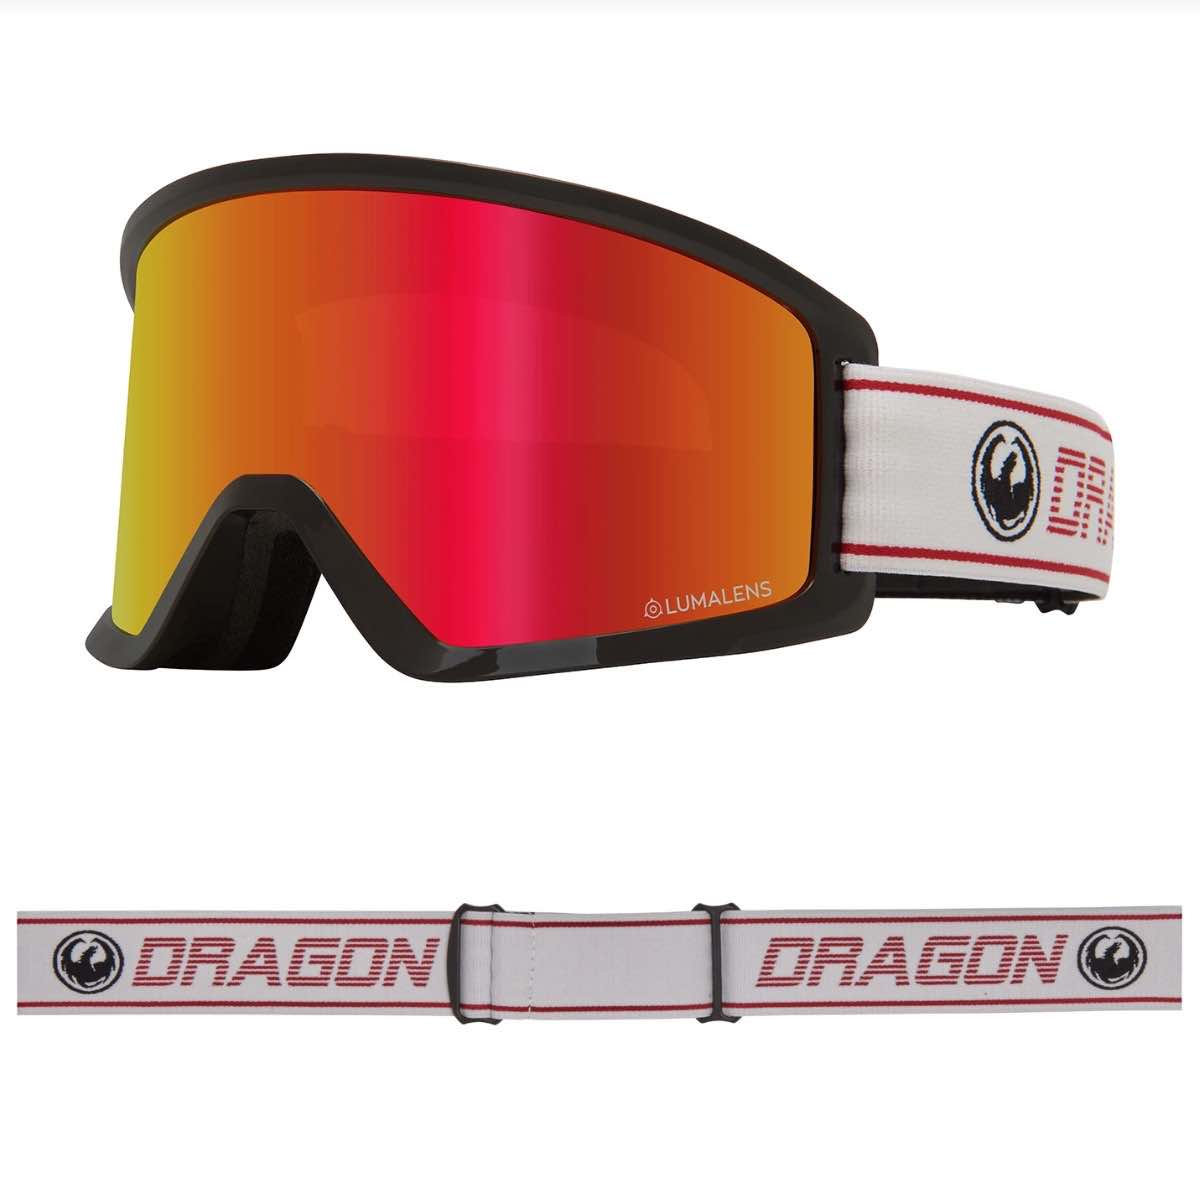 DRAGON DX3 OTG BENTAM MED LUMALENS RED IONIZED LENS - GOGGLES